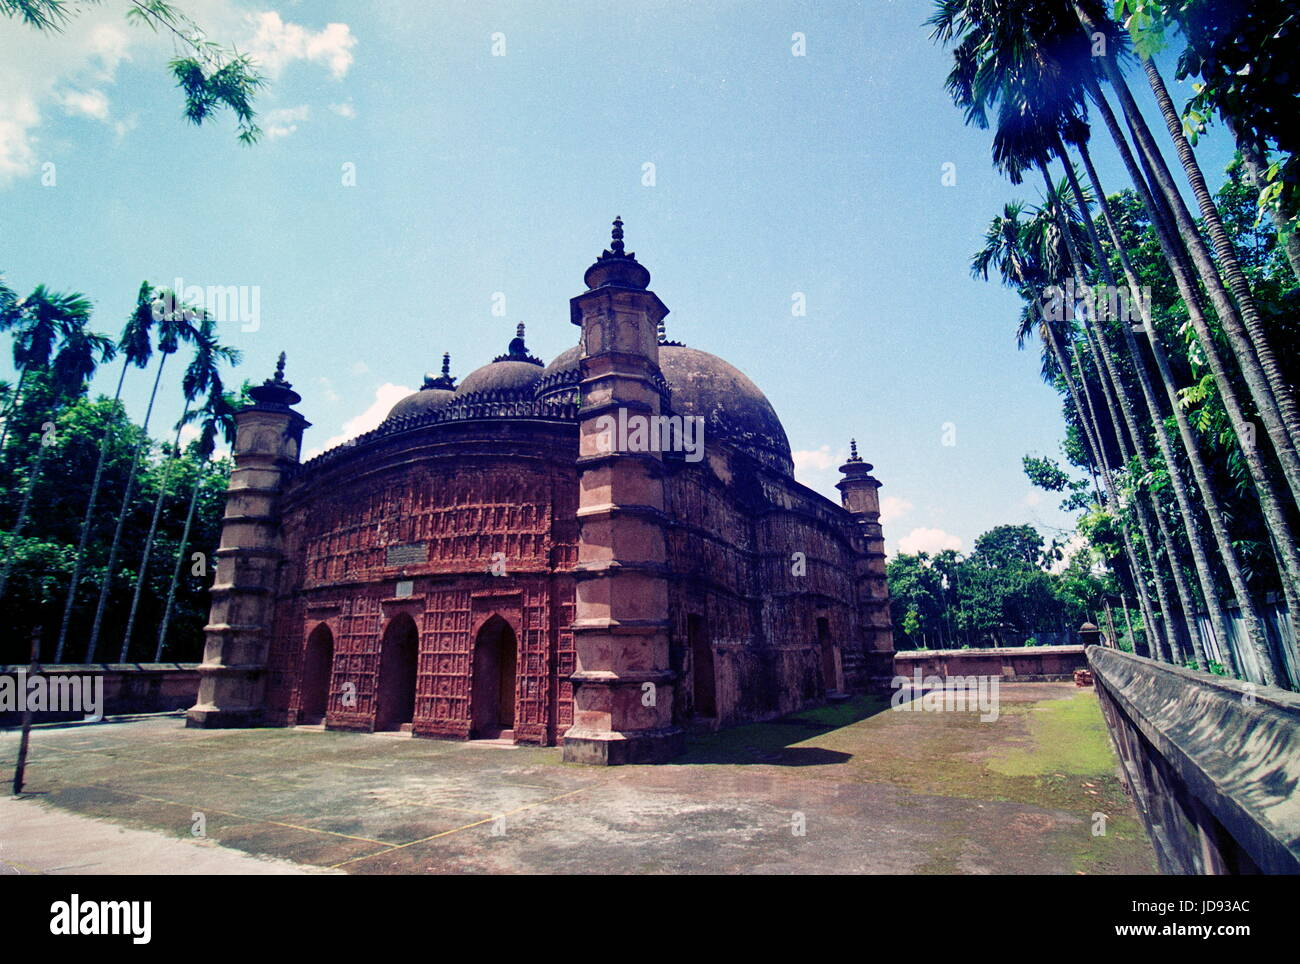 atia jame mosque stands with its fascinating and creative architectural view of mugfal era which was made by the - Stock Image